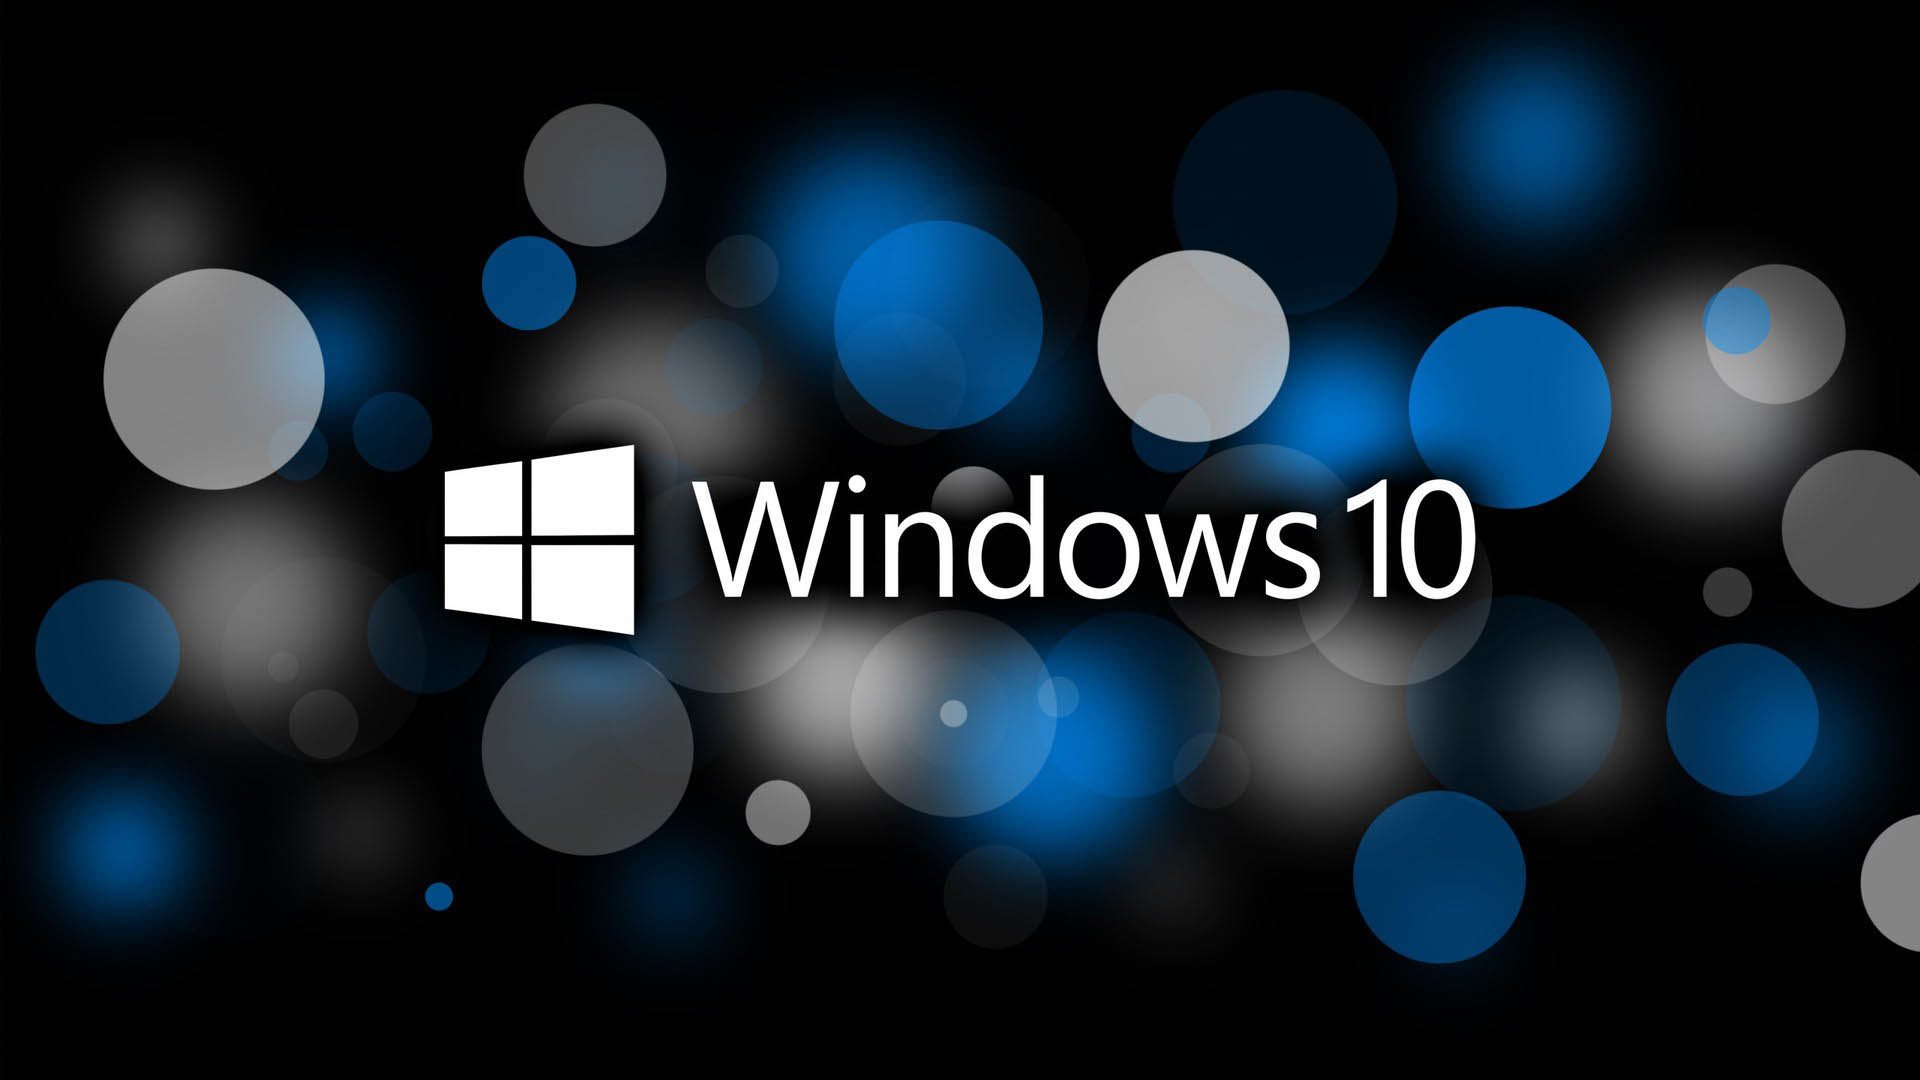 Windows 10 wallpaper full hd